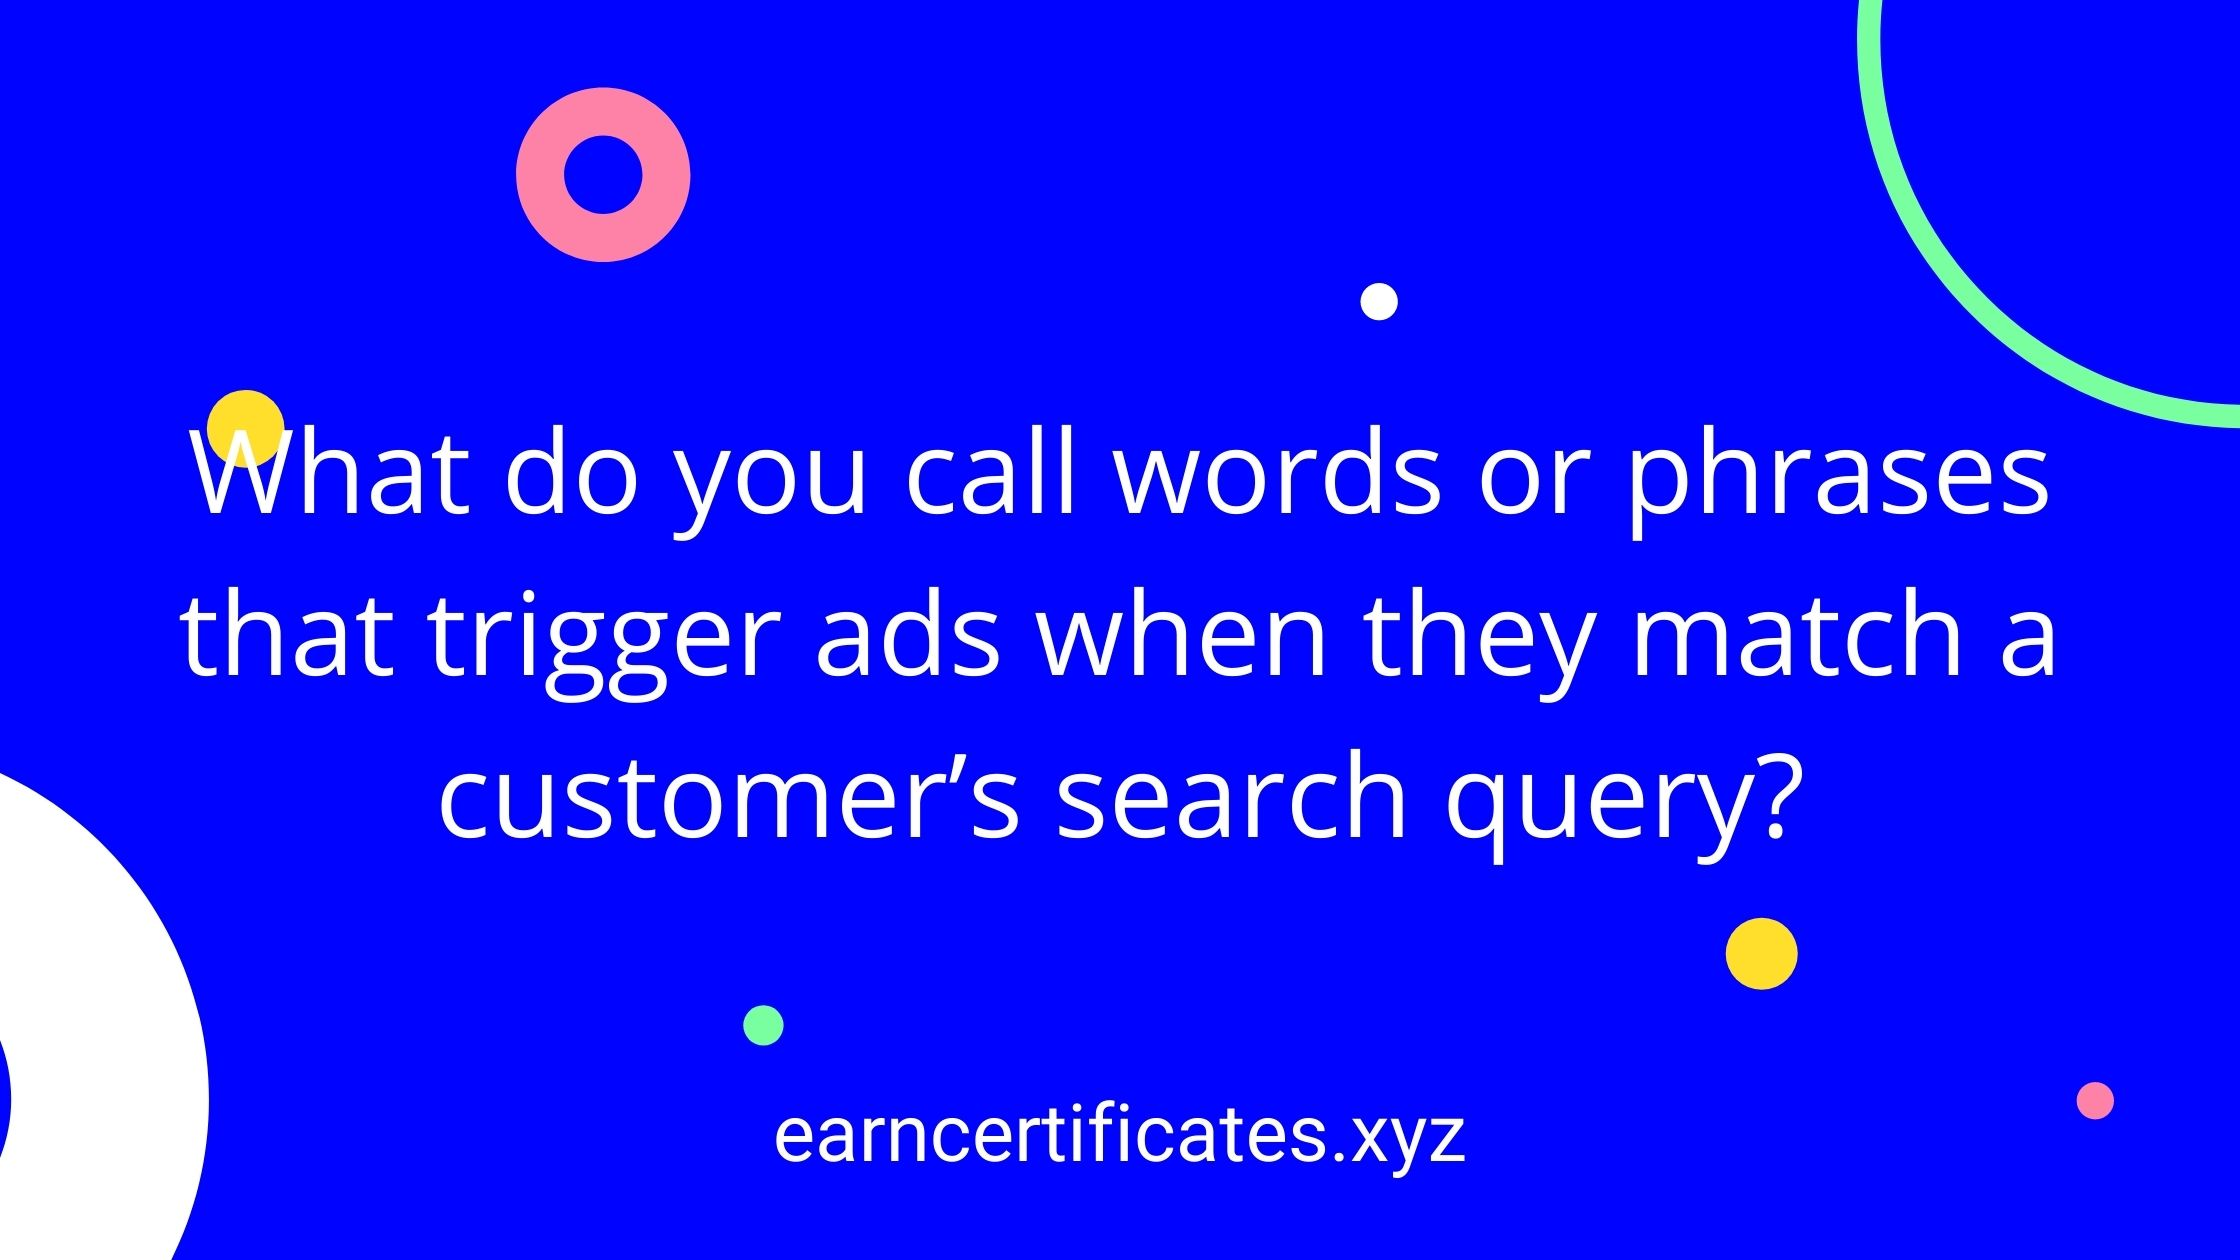 What do you call words or phrases that trigger ads when they match a customer's search query?